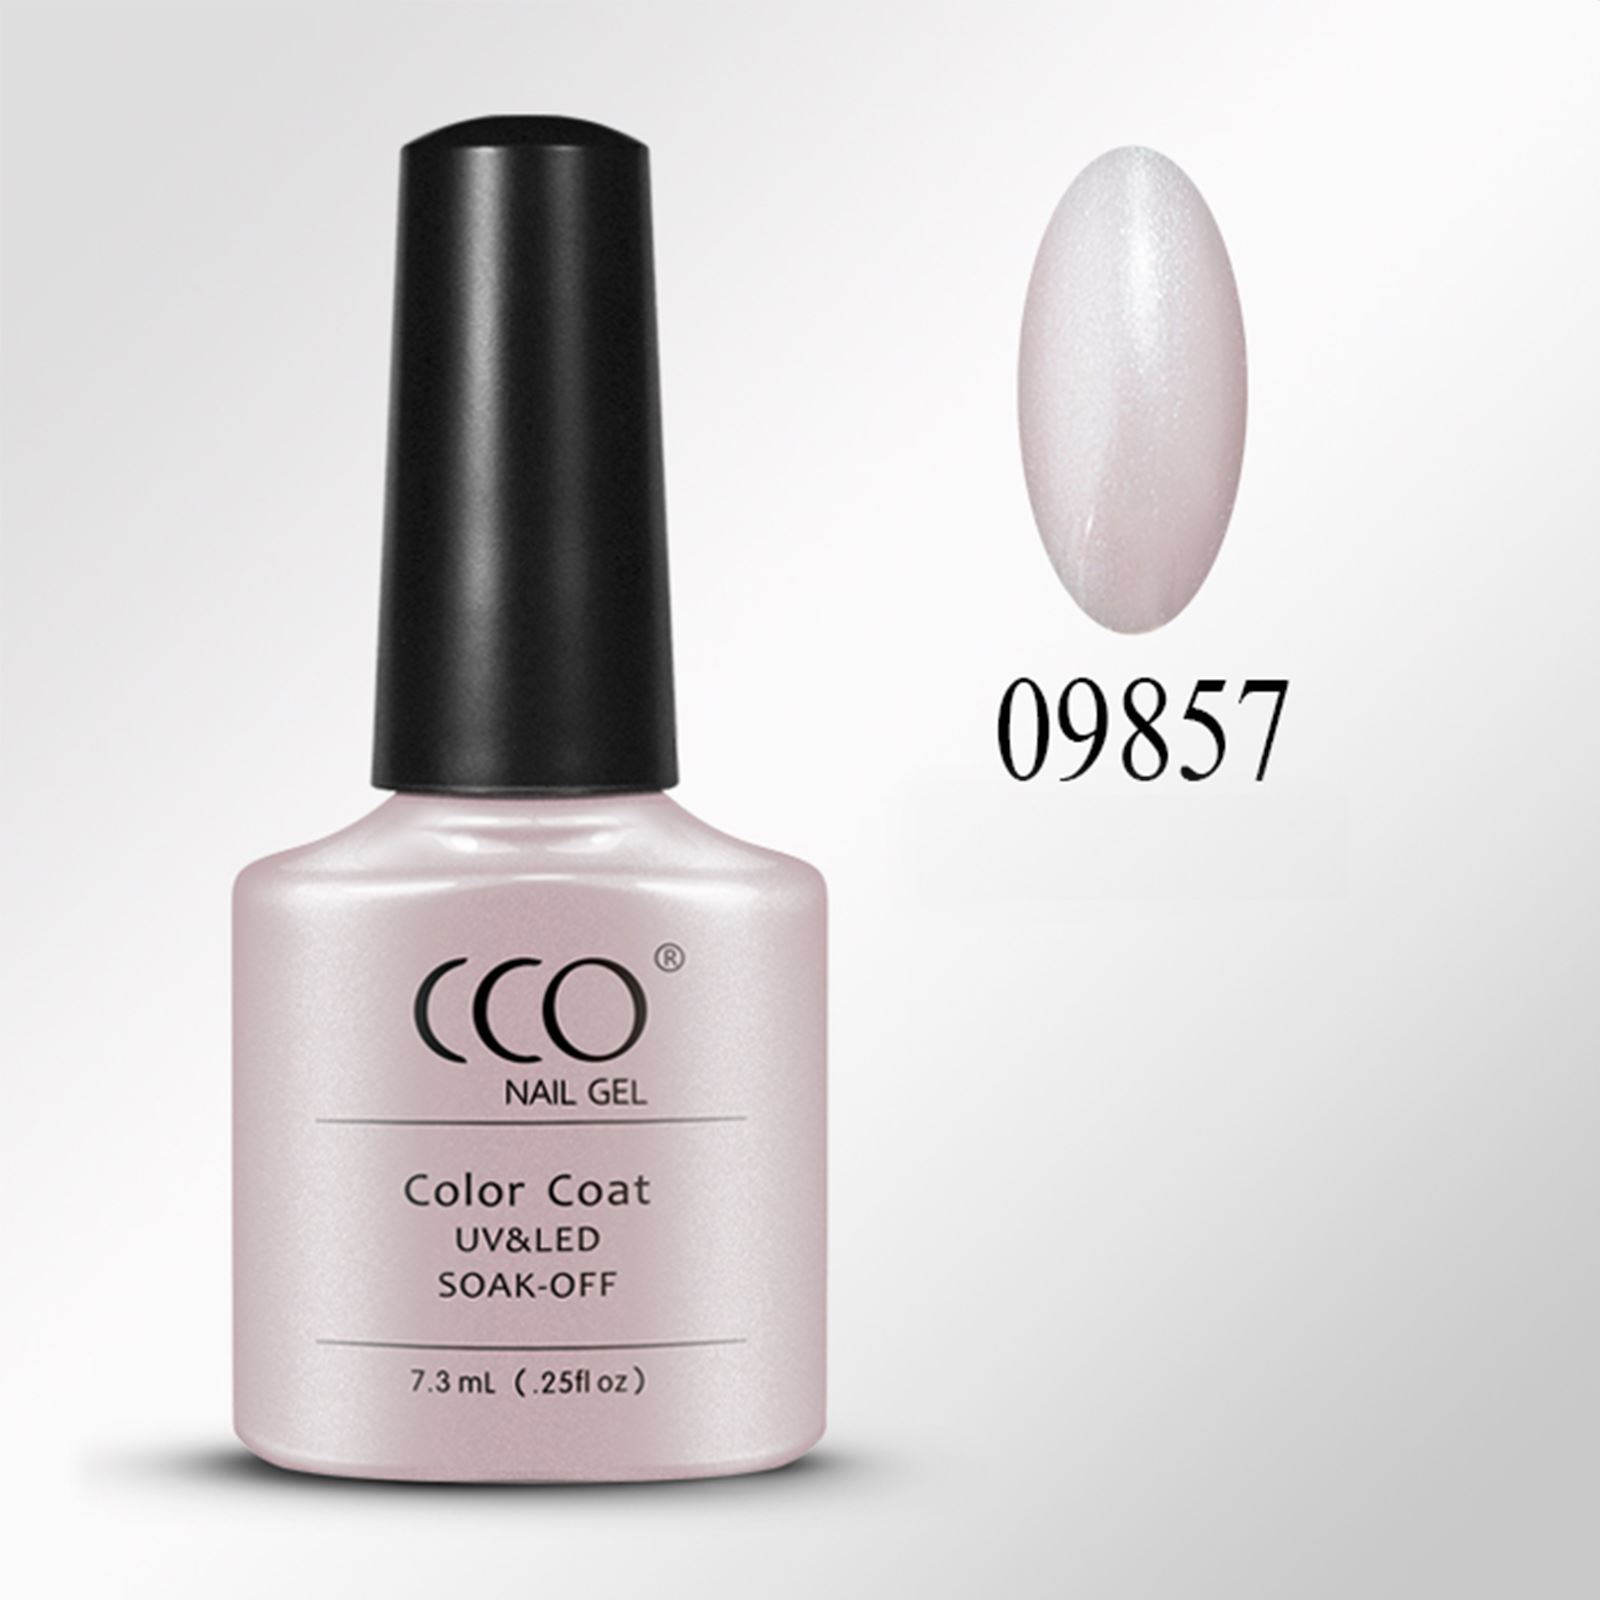 CCO - ORIGINAL RANGE UV LED NAIL GEL POLISH VARNISH NAILS SOAK OFF ...